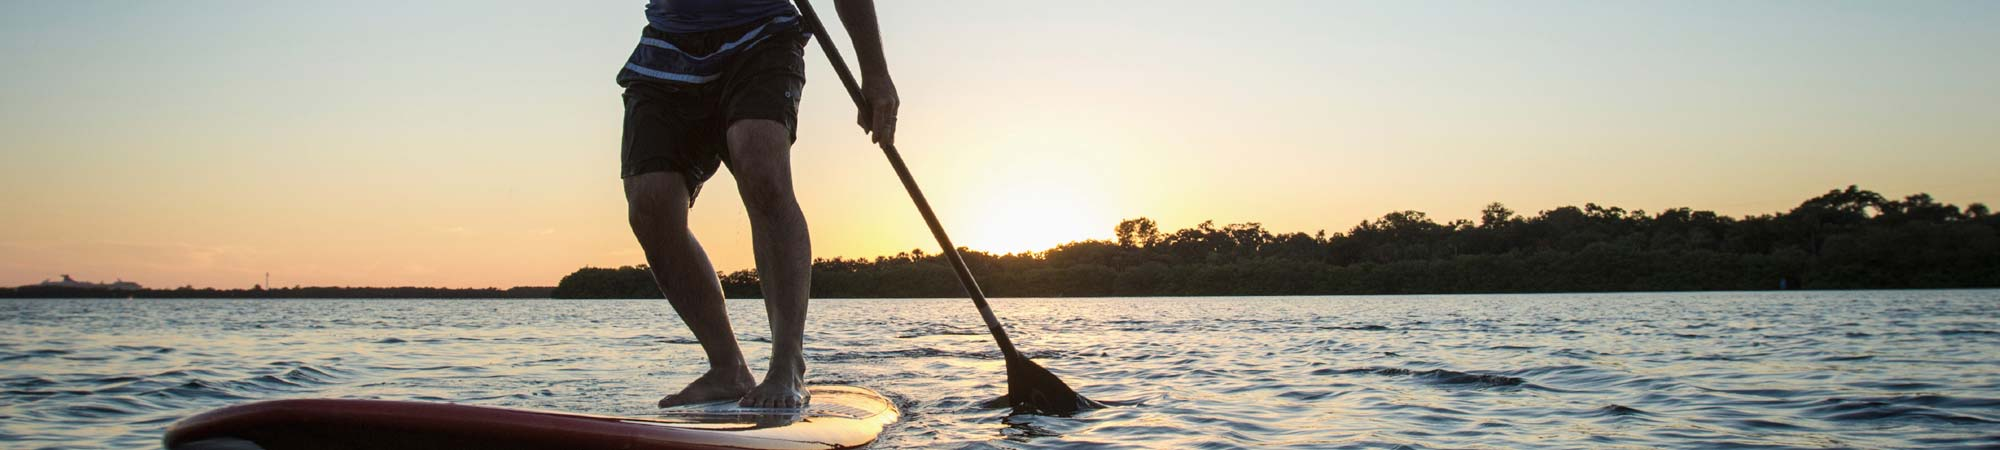 slide-activities-Paddleboard_1_2000x450